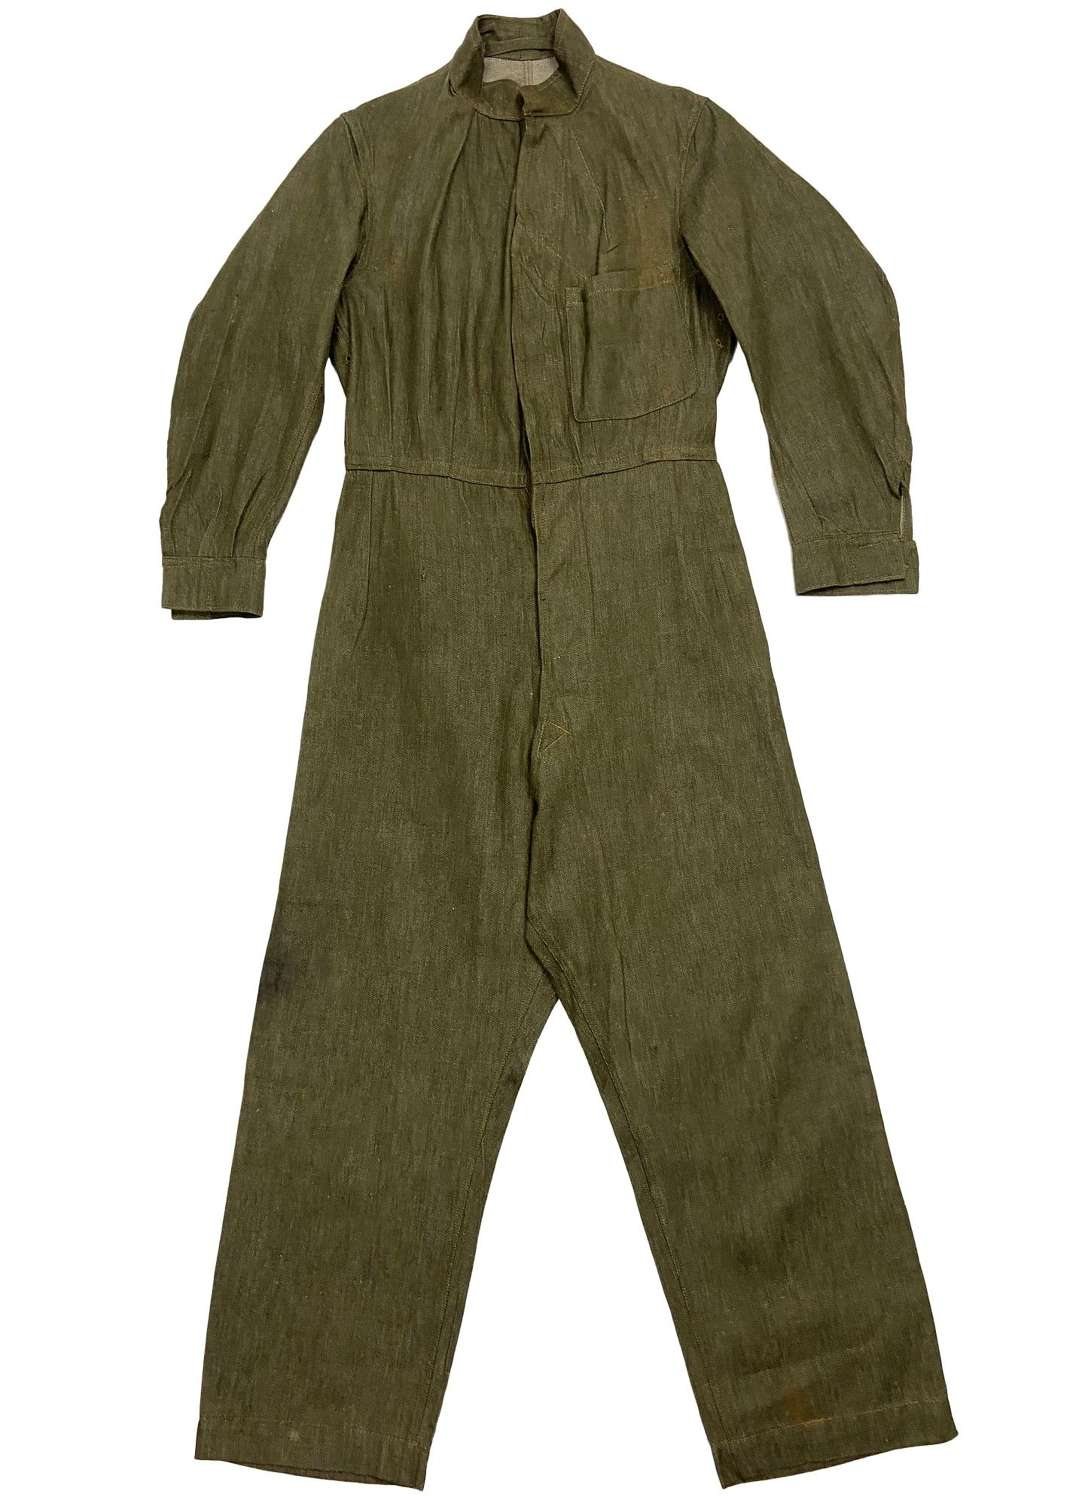 Original 1942 Dated Auxiliary Territorial Service Overalls